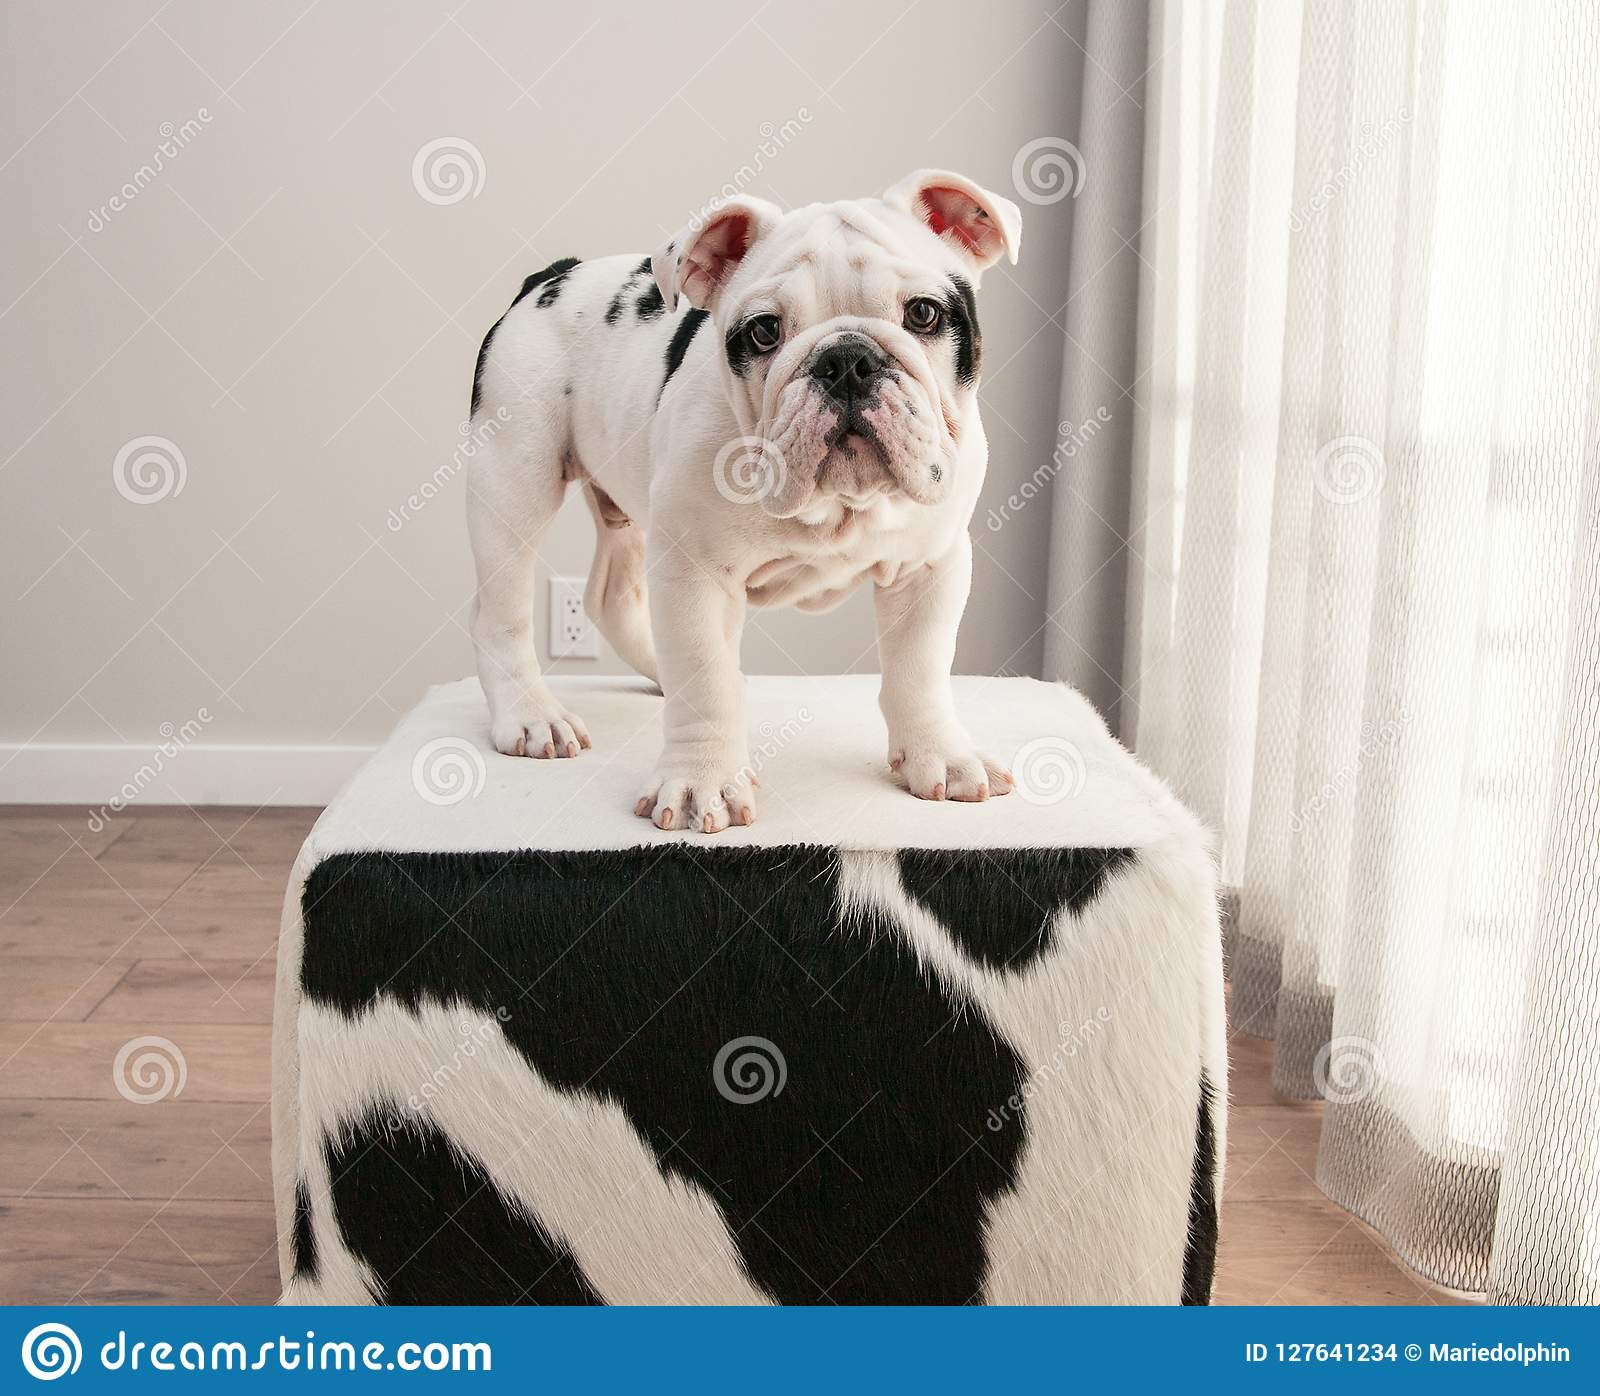 Black And White Bulldog Puppy Dog Stands On Cow Hide Ottoman Stock Photo Image Of Hide Faux 127641234